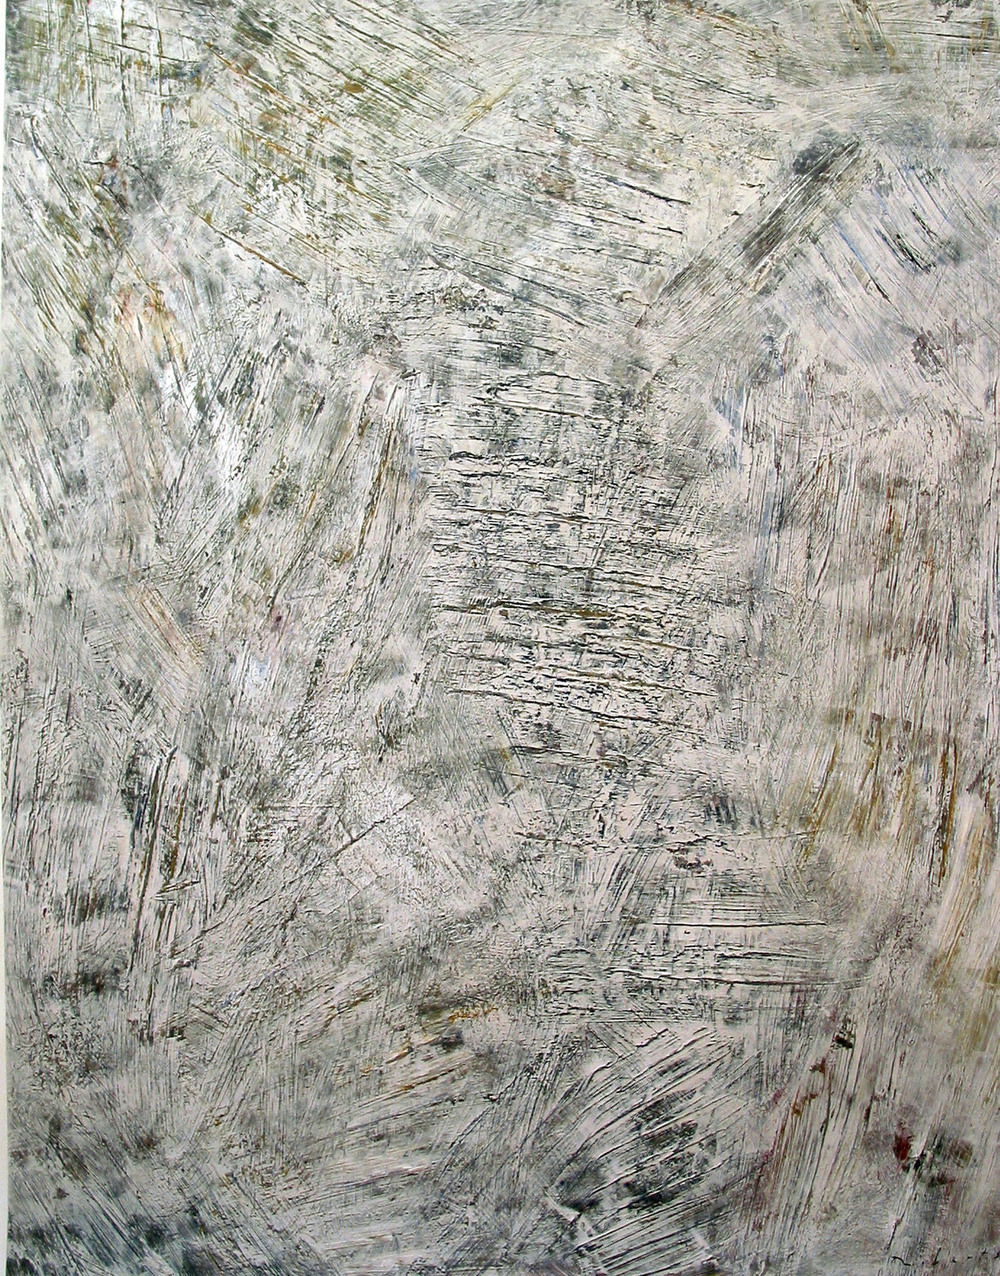 Liam Roberts_2004_In the Cloud_acrylic on paper_61 x 48cm.jpg